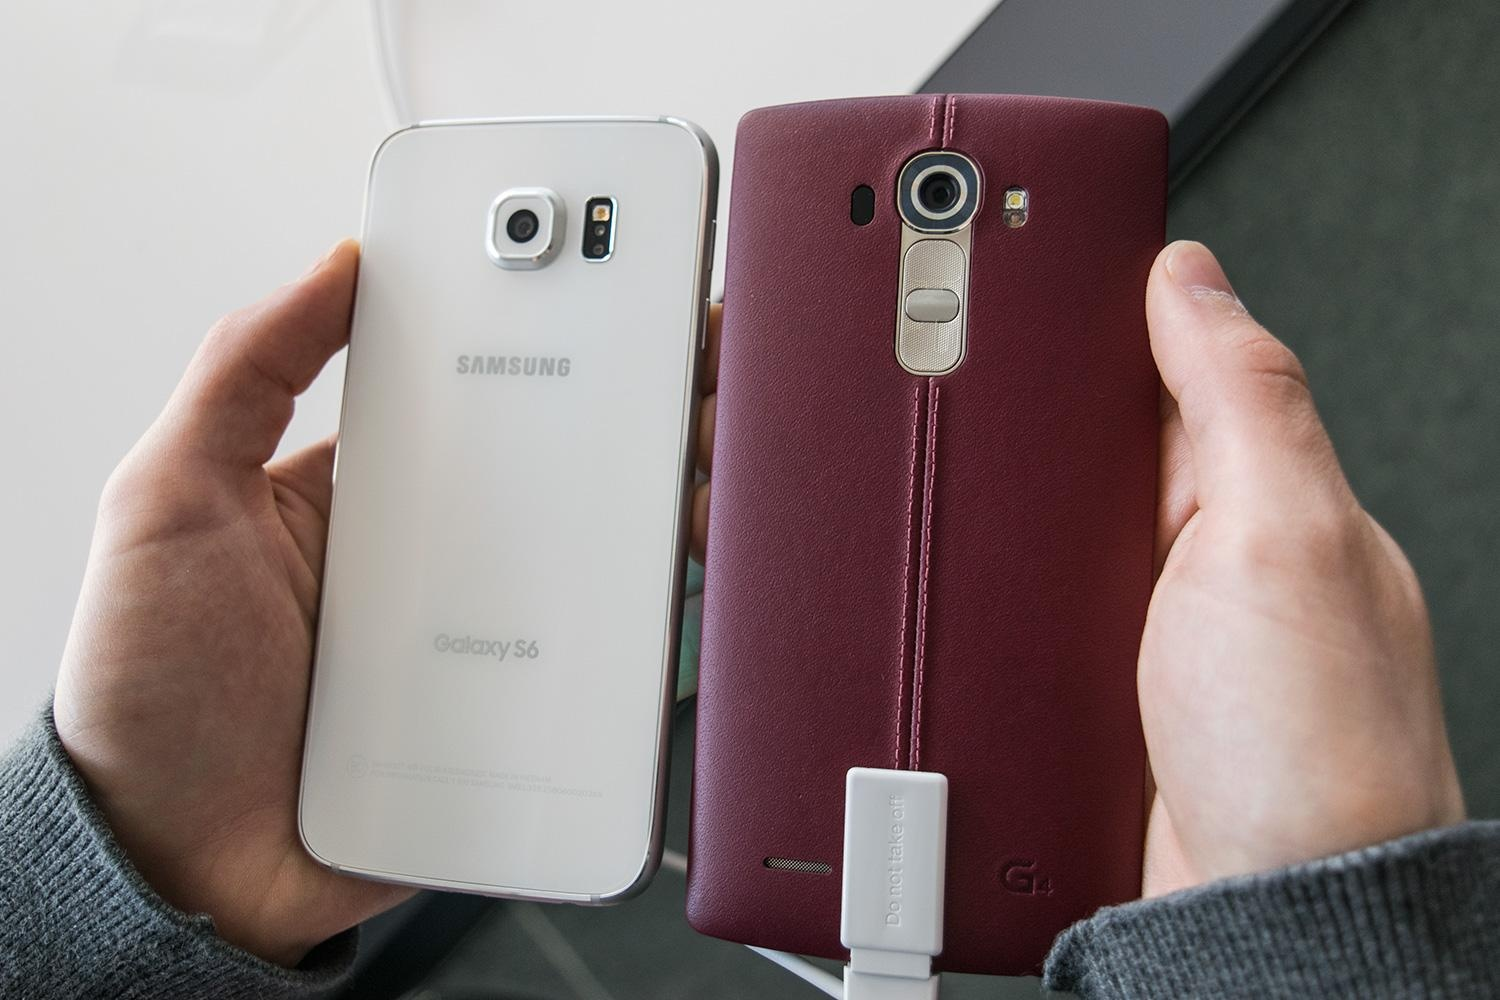 LG G4 over the Galaxy S6